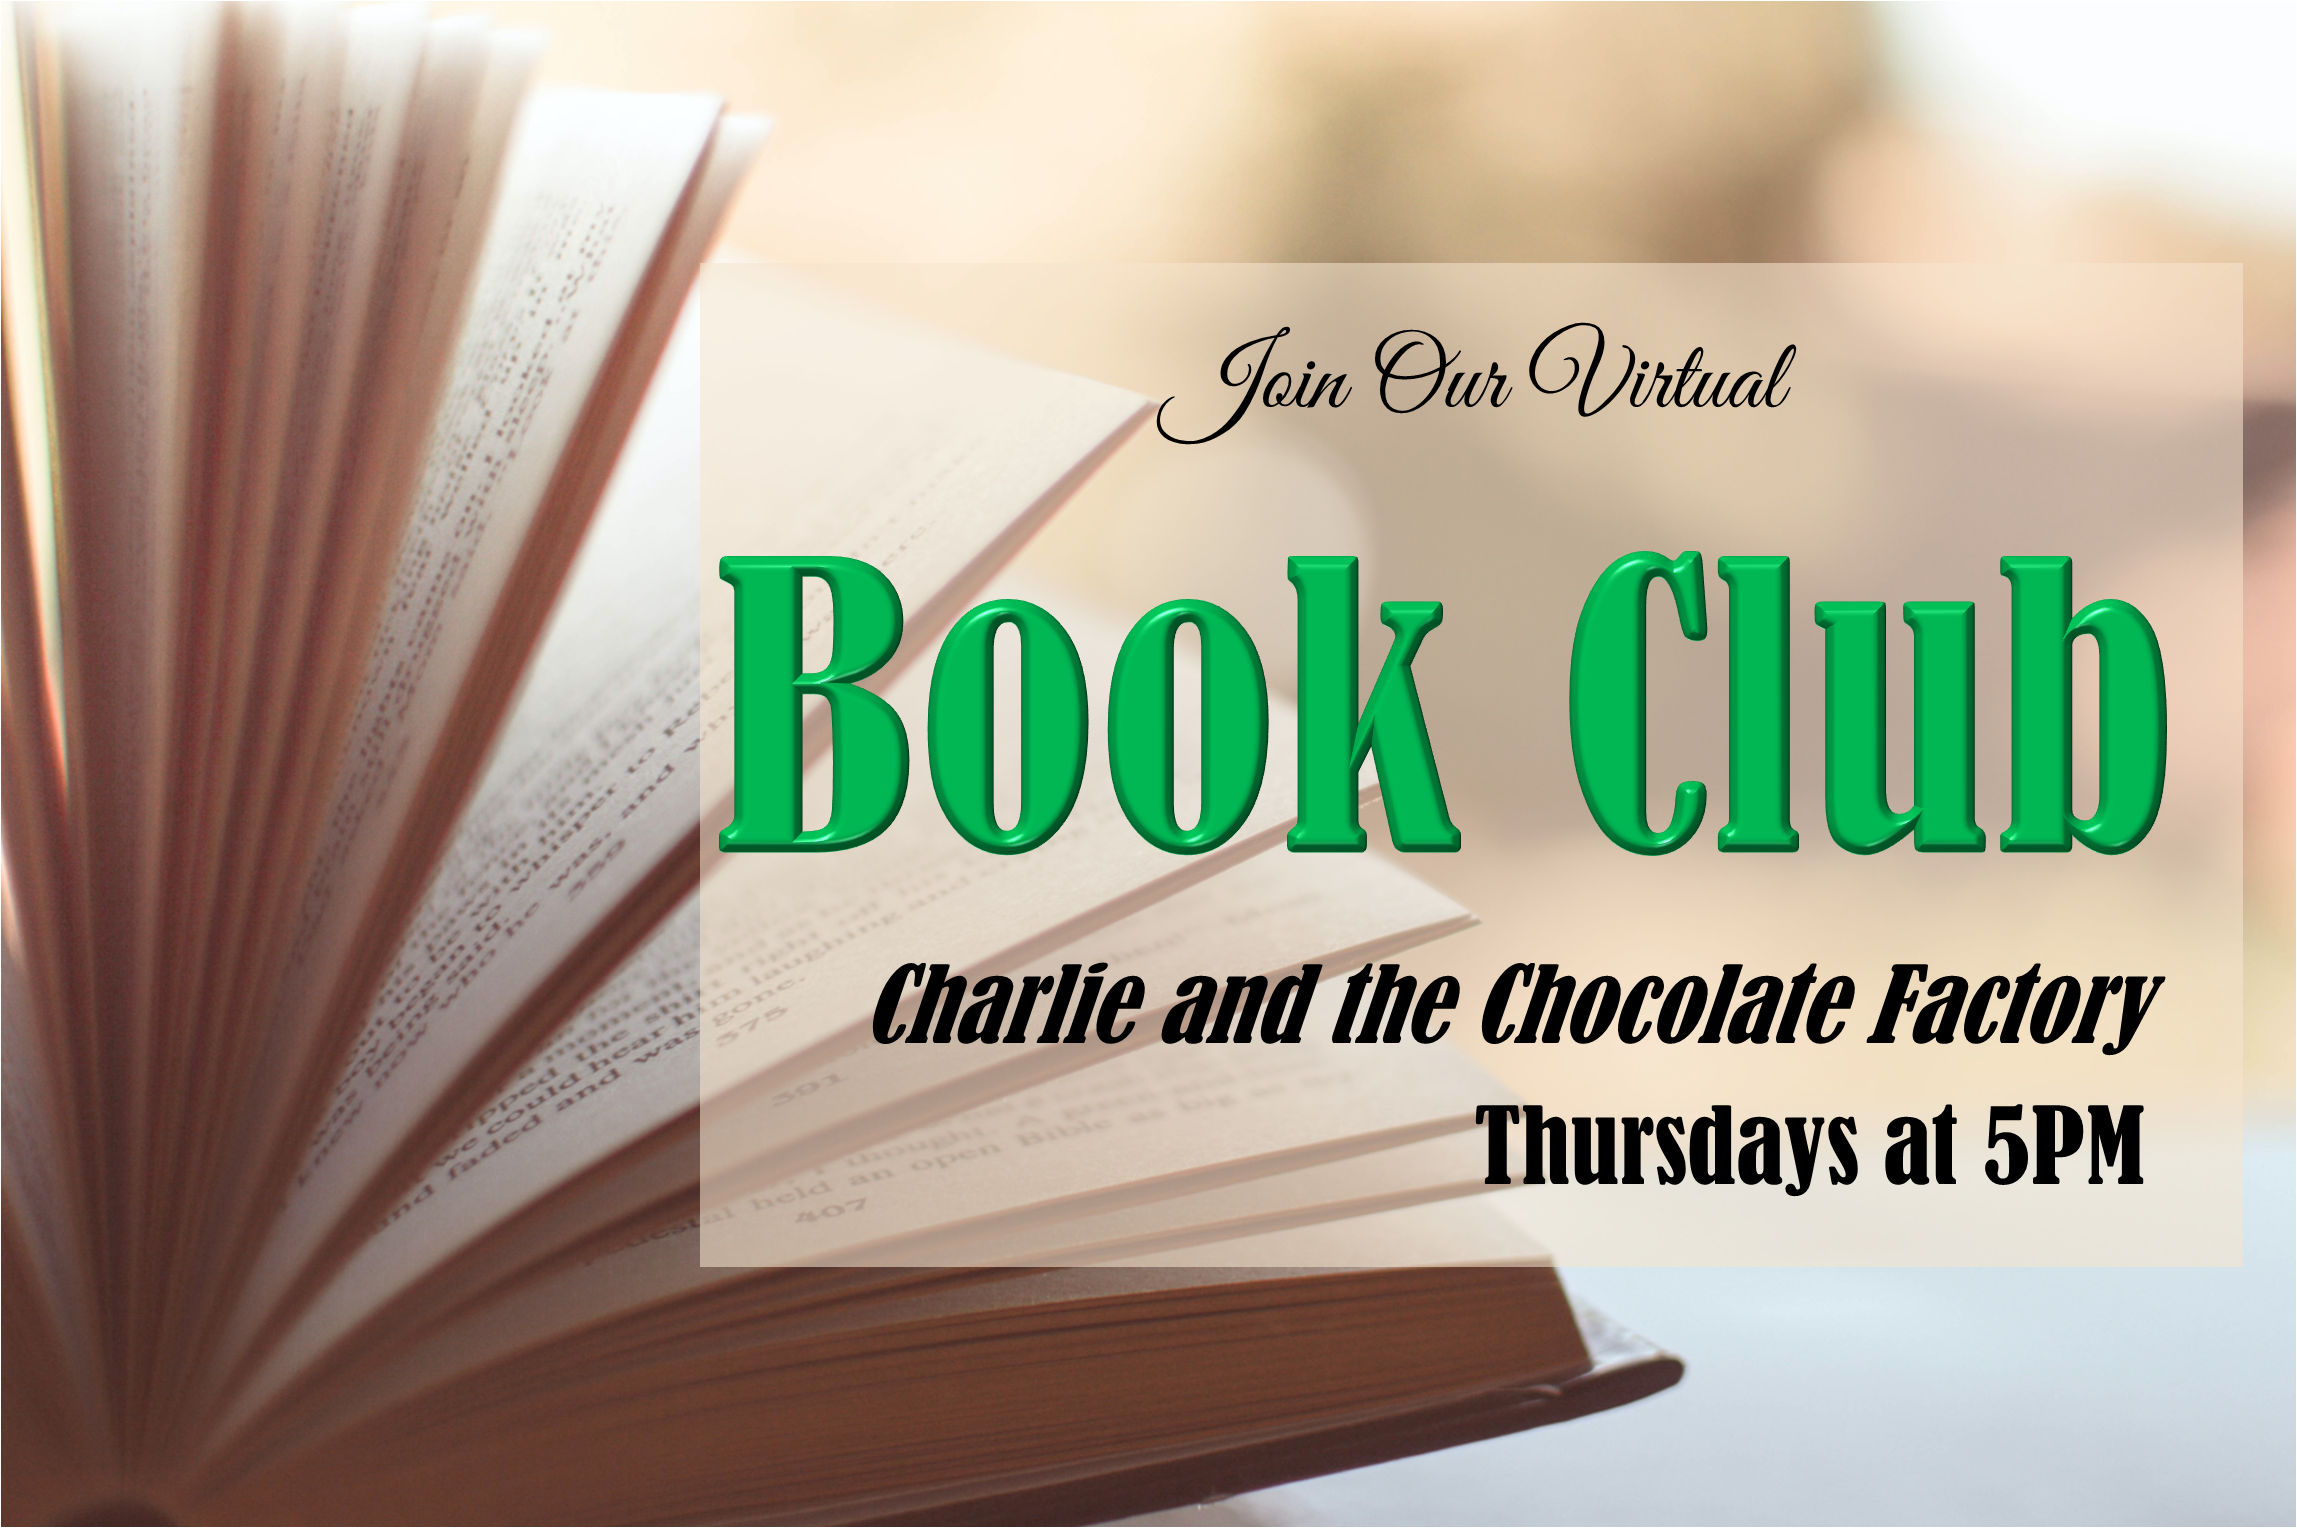 Join our Virtual Book Club, Thursdays at 5PM